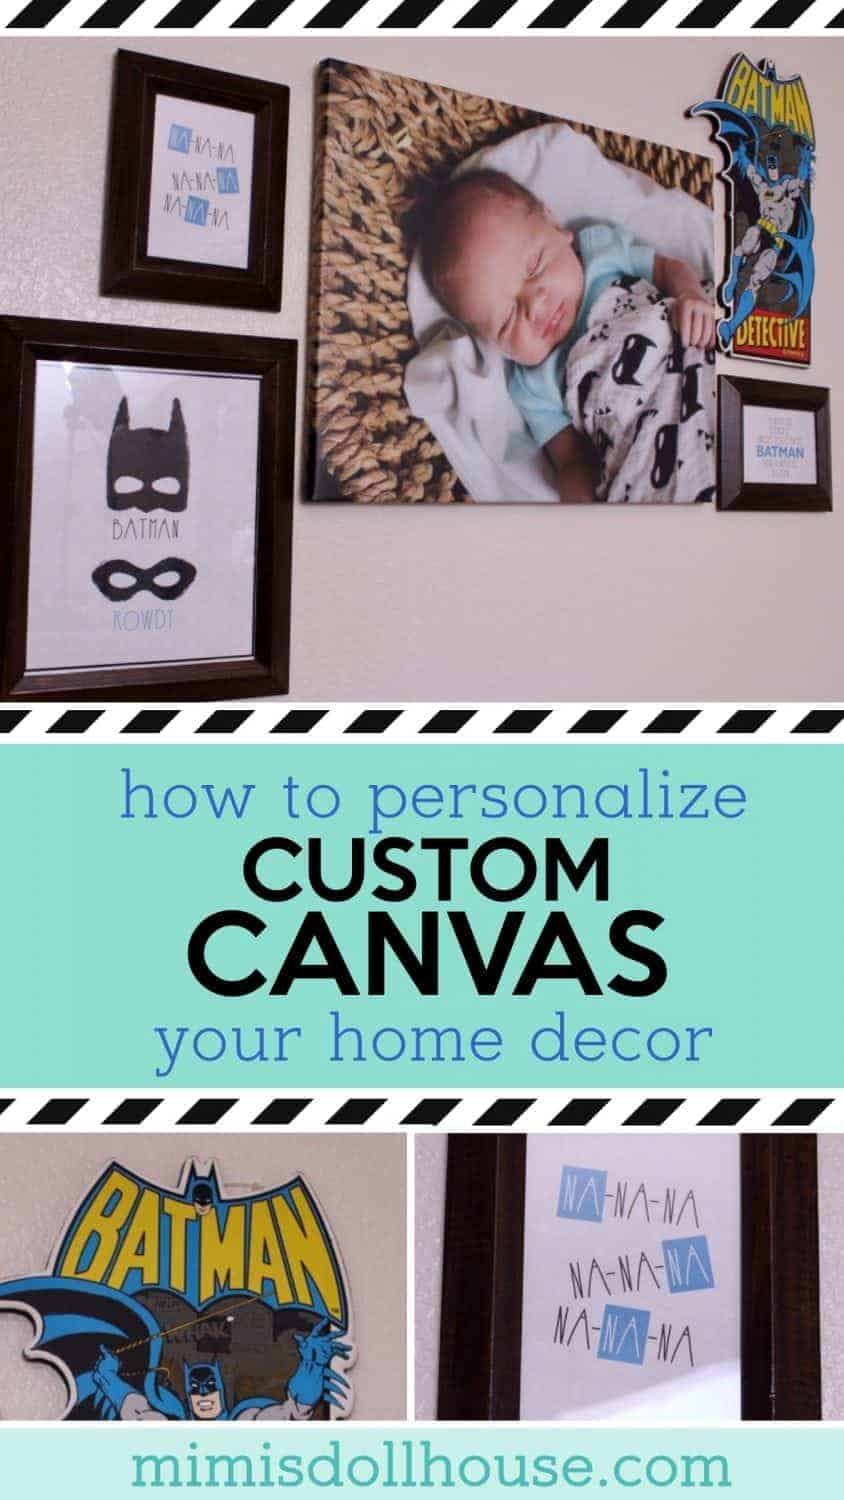 Looking for an inexpensive way to personalize your home decor?  Check out these affordable personalized canvases.